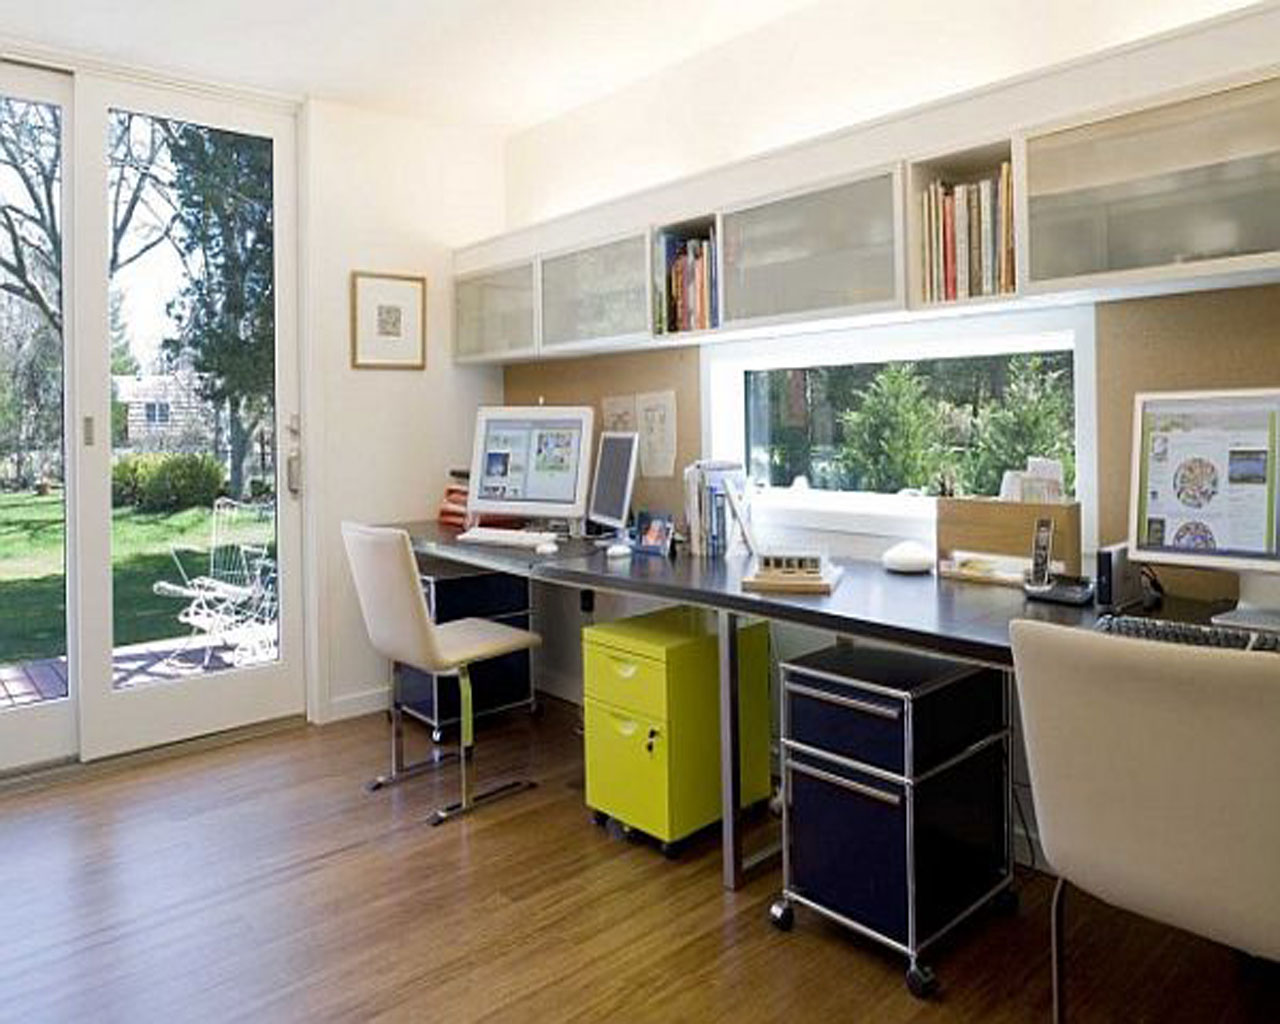 Genial Home Office Design Cool. Home Office Archives. Offices Archives Design Cool